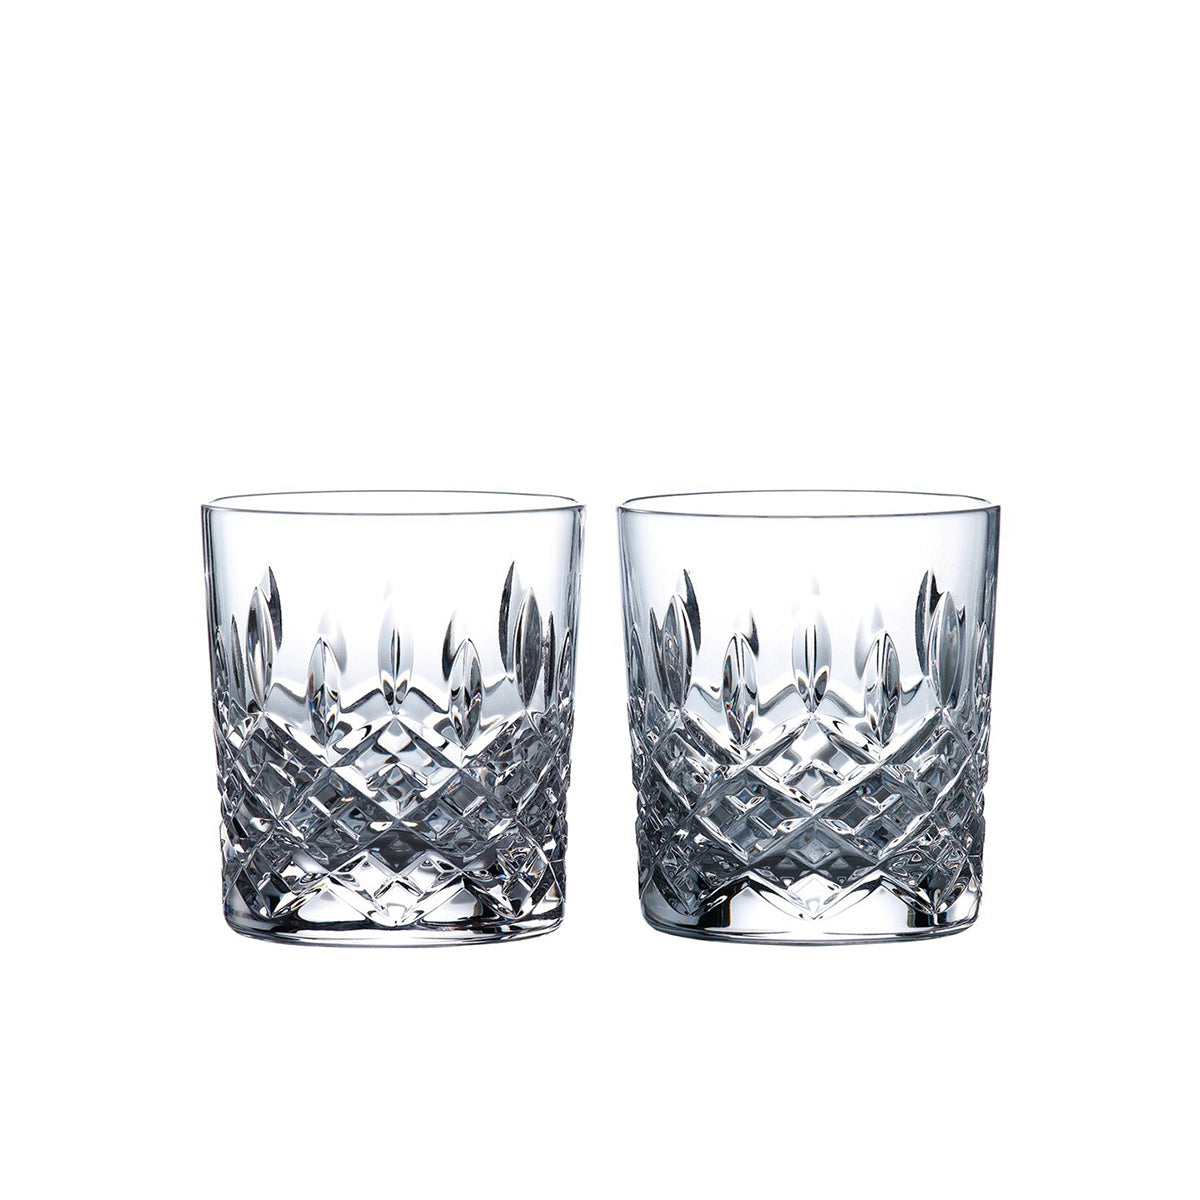 Highclere Crystal Tumblers / Set 2